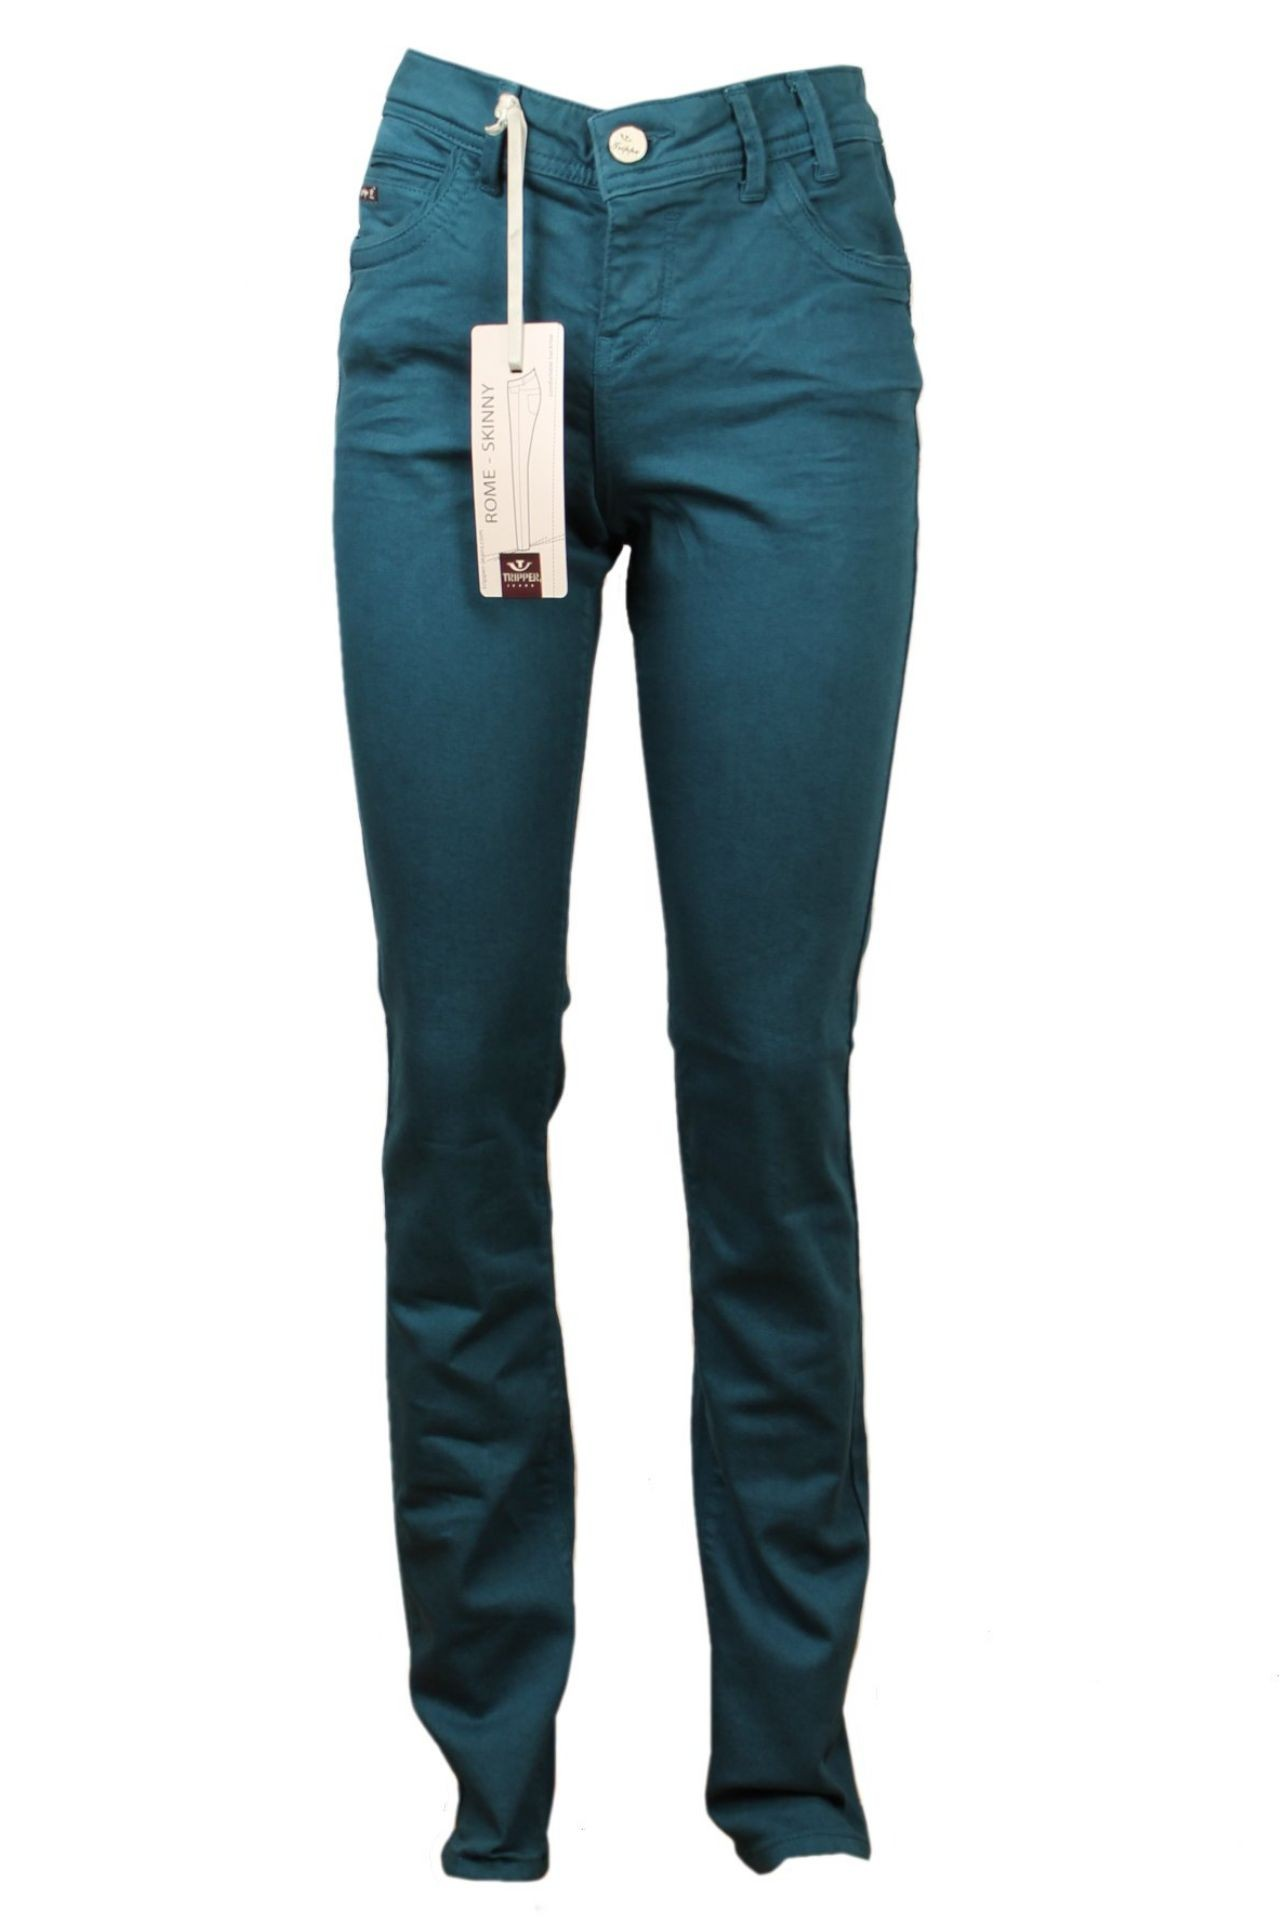 Citaten Weergeven Jeans : Tripper jeans rome skinny rosafashionoutlet